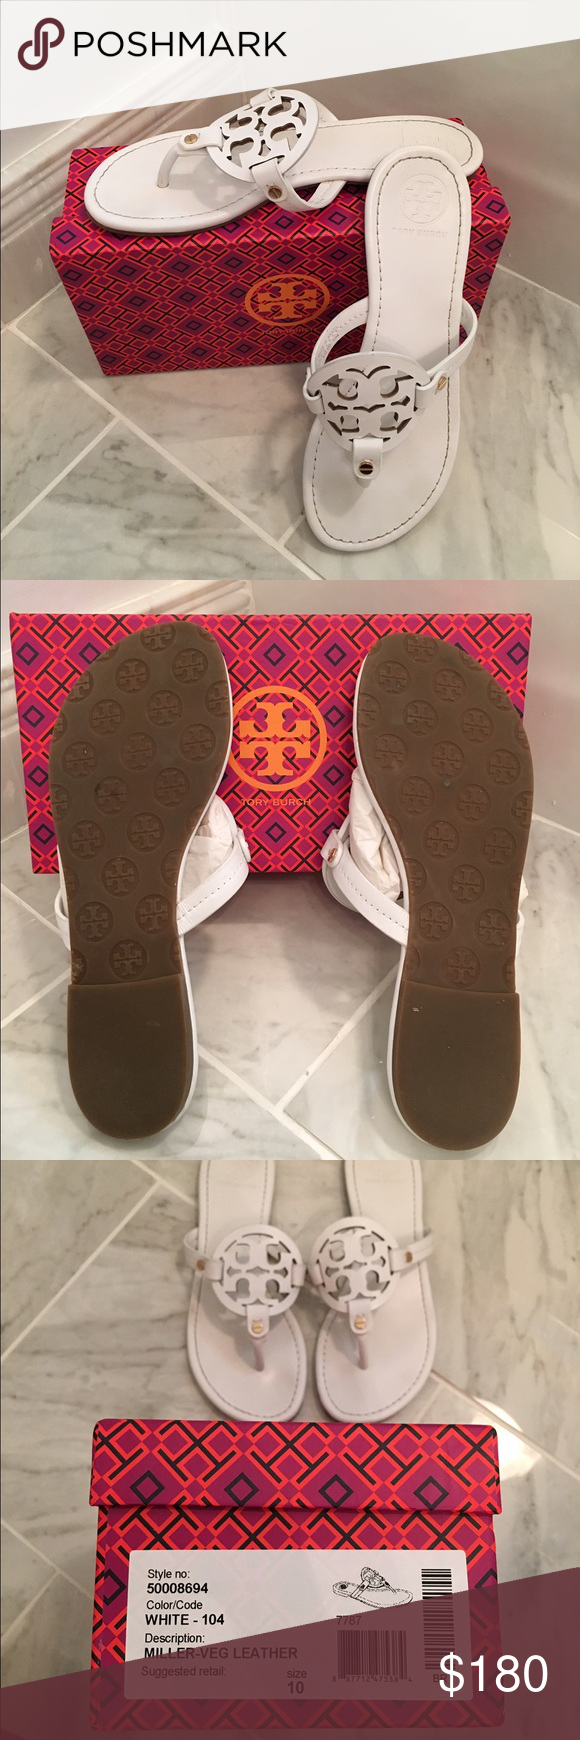 Tory Burch Miller Sandal white, in great condition! worn twice. new with box. size 10, fit like a 9.5 Tory Burch Shoes Sandals